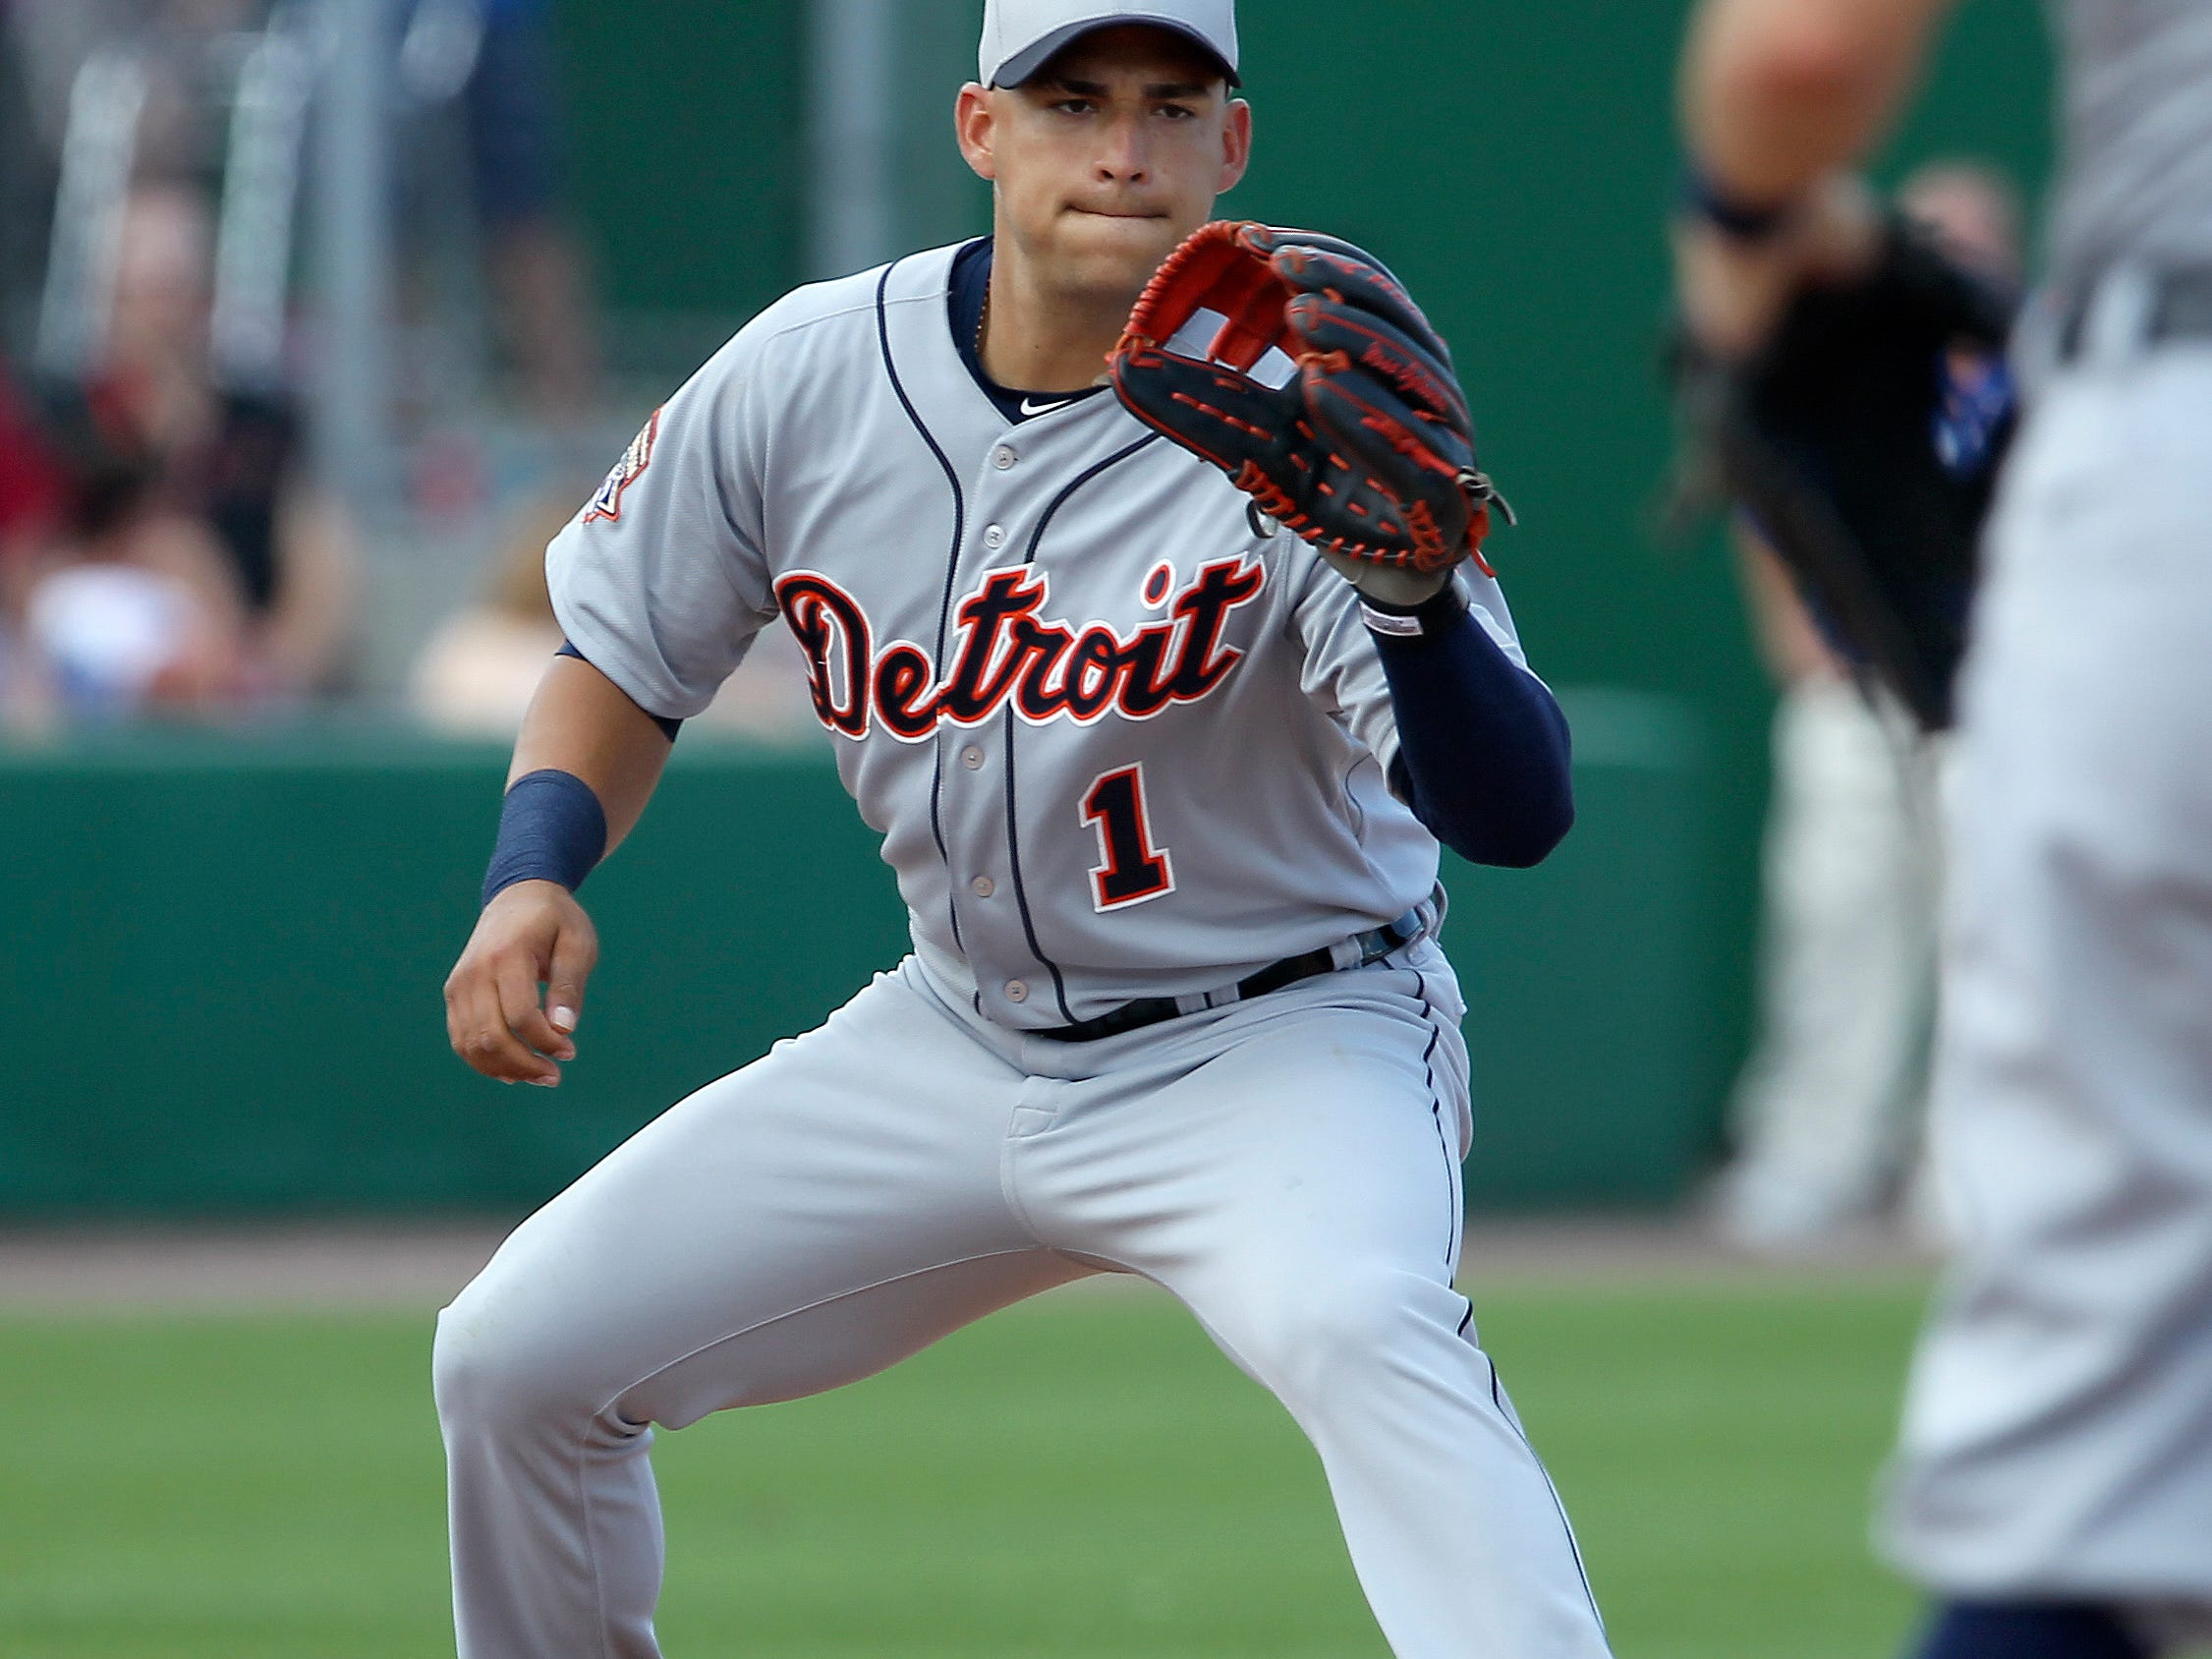 Tigers shortstop Jose Iglesias (1) waits for the throw from second baseman Ian Kinsler (not pictured) to force out Philadelphia Phillies left fielder Domonic Brown (not pictured) during the fourth inning of a spring training baseball game at Bright House Field.